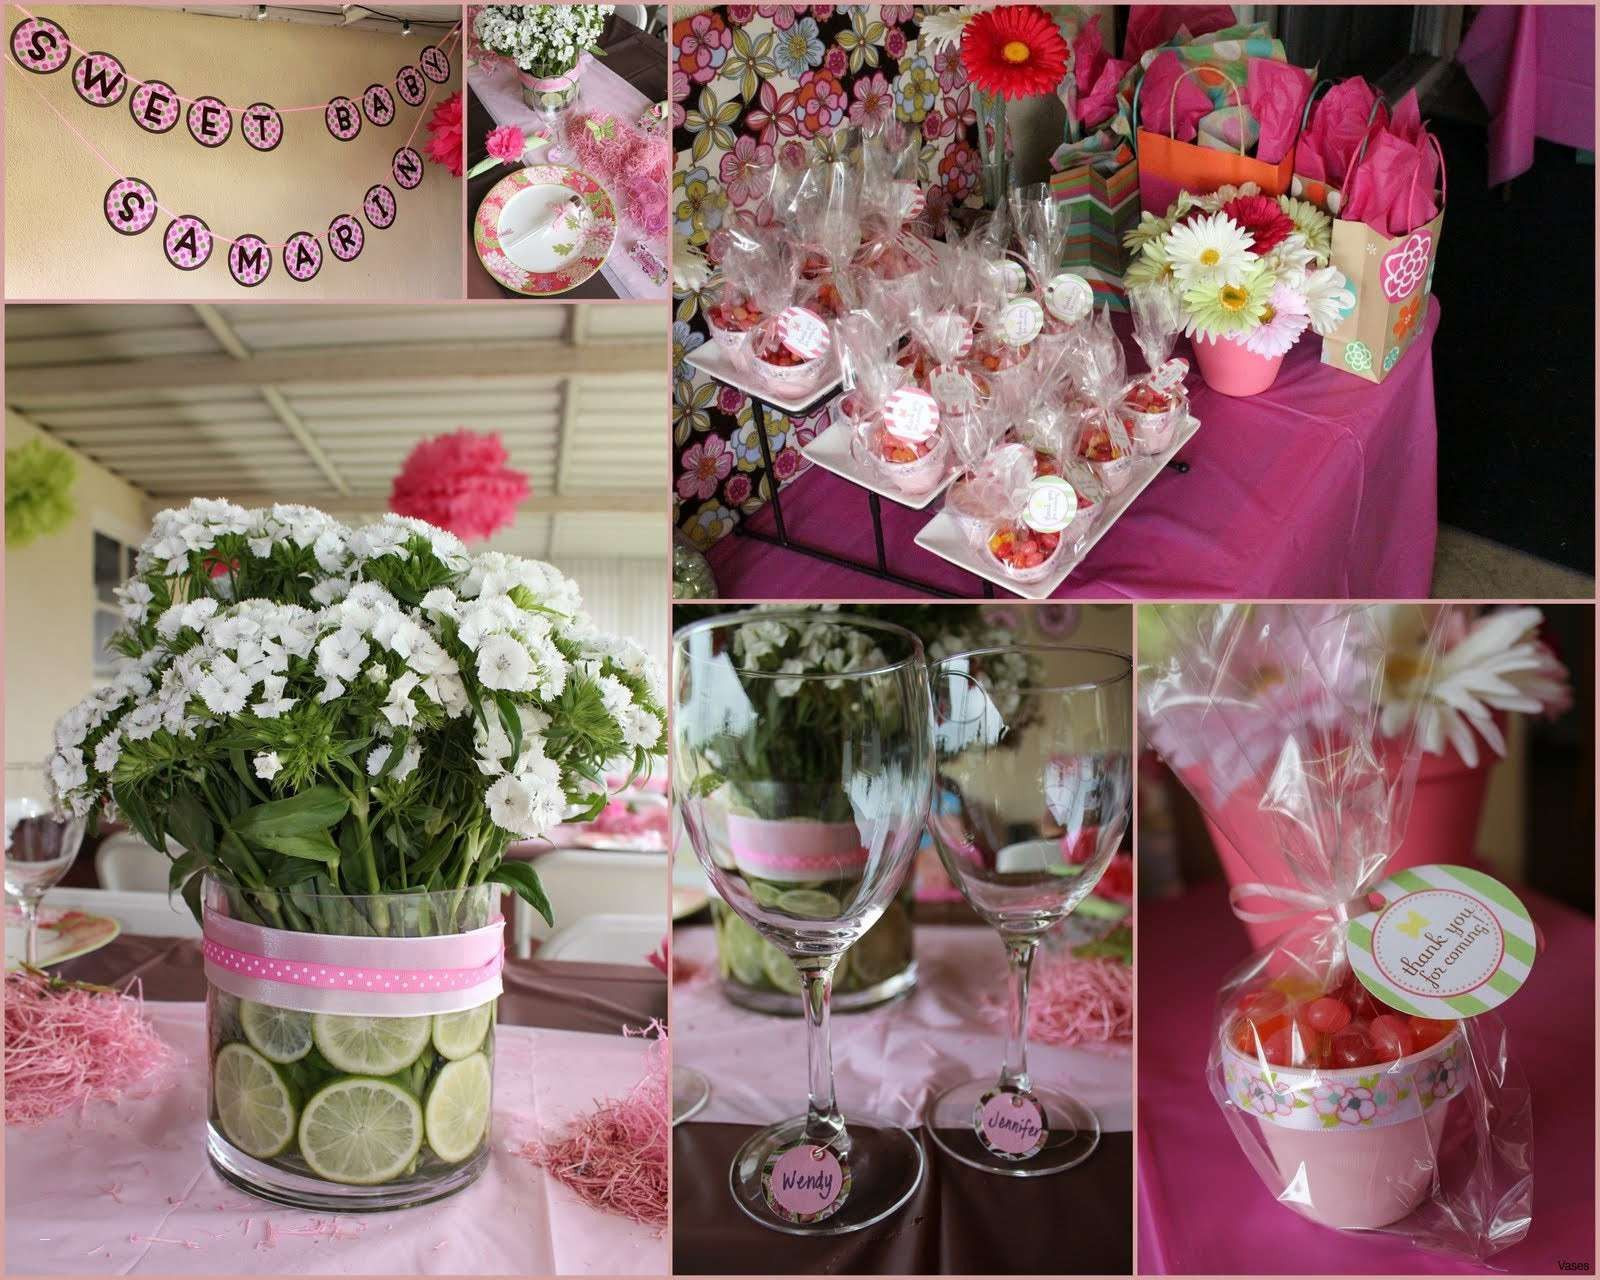 pink pearl vase fillers of 30 pearl vase fillers the weekly world throughout baby shower vase centerpiece ideas vase and cellar image avorcor